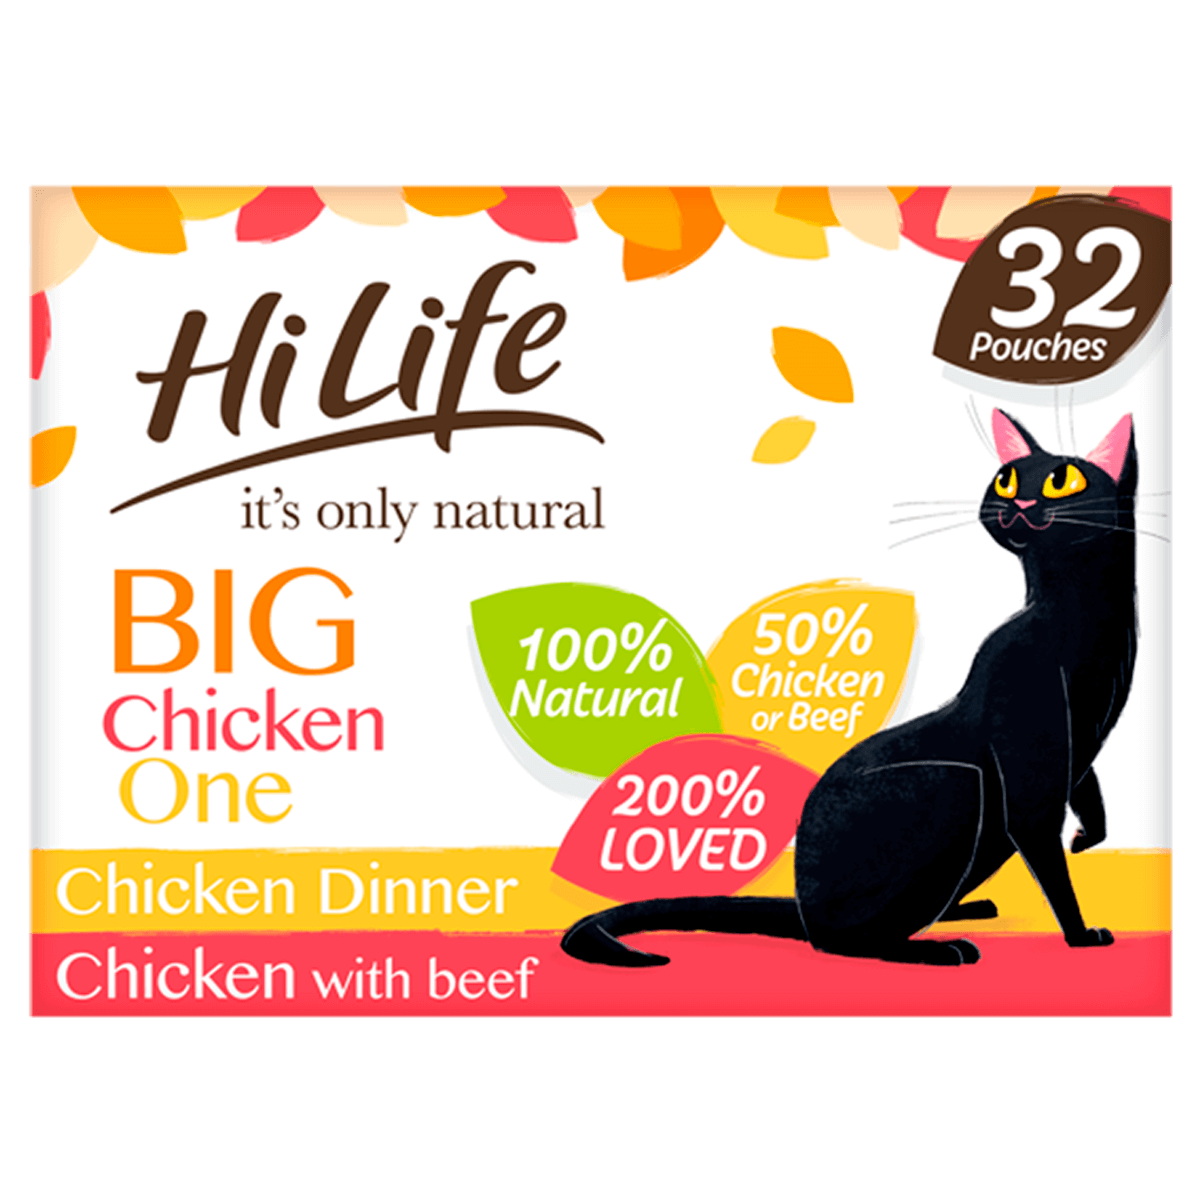 hilife the big chicken one